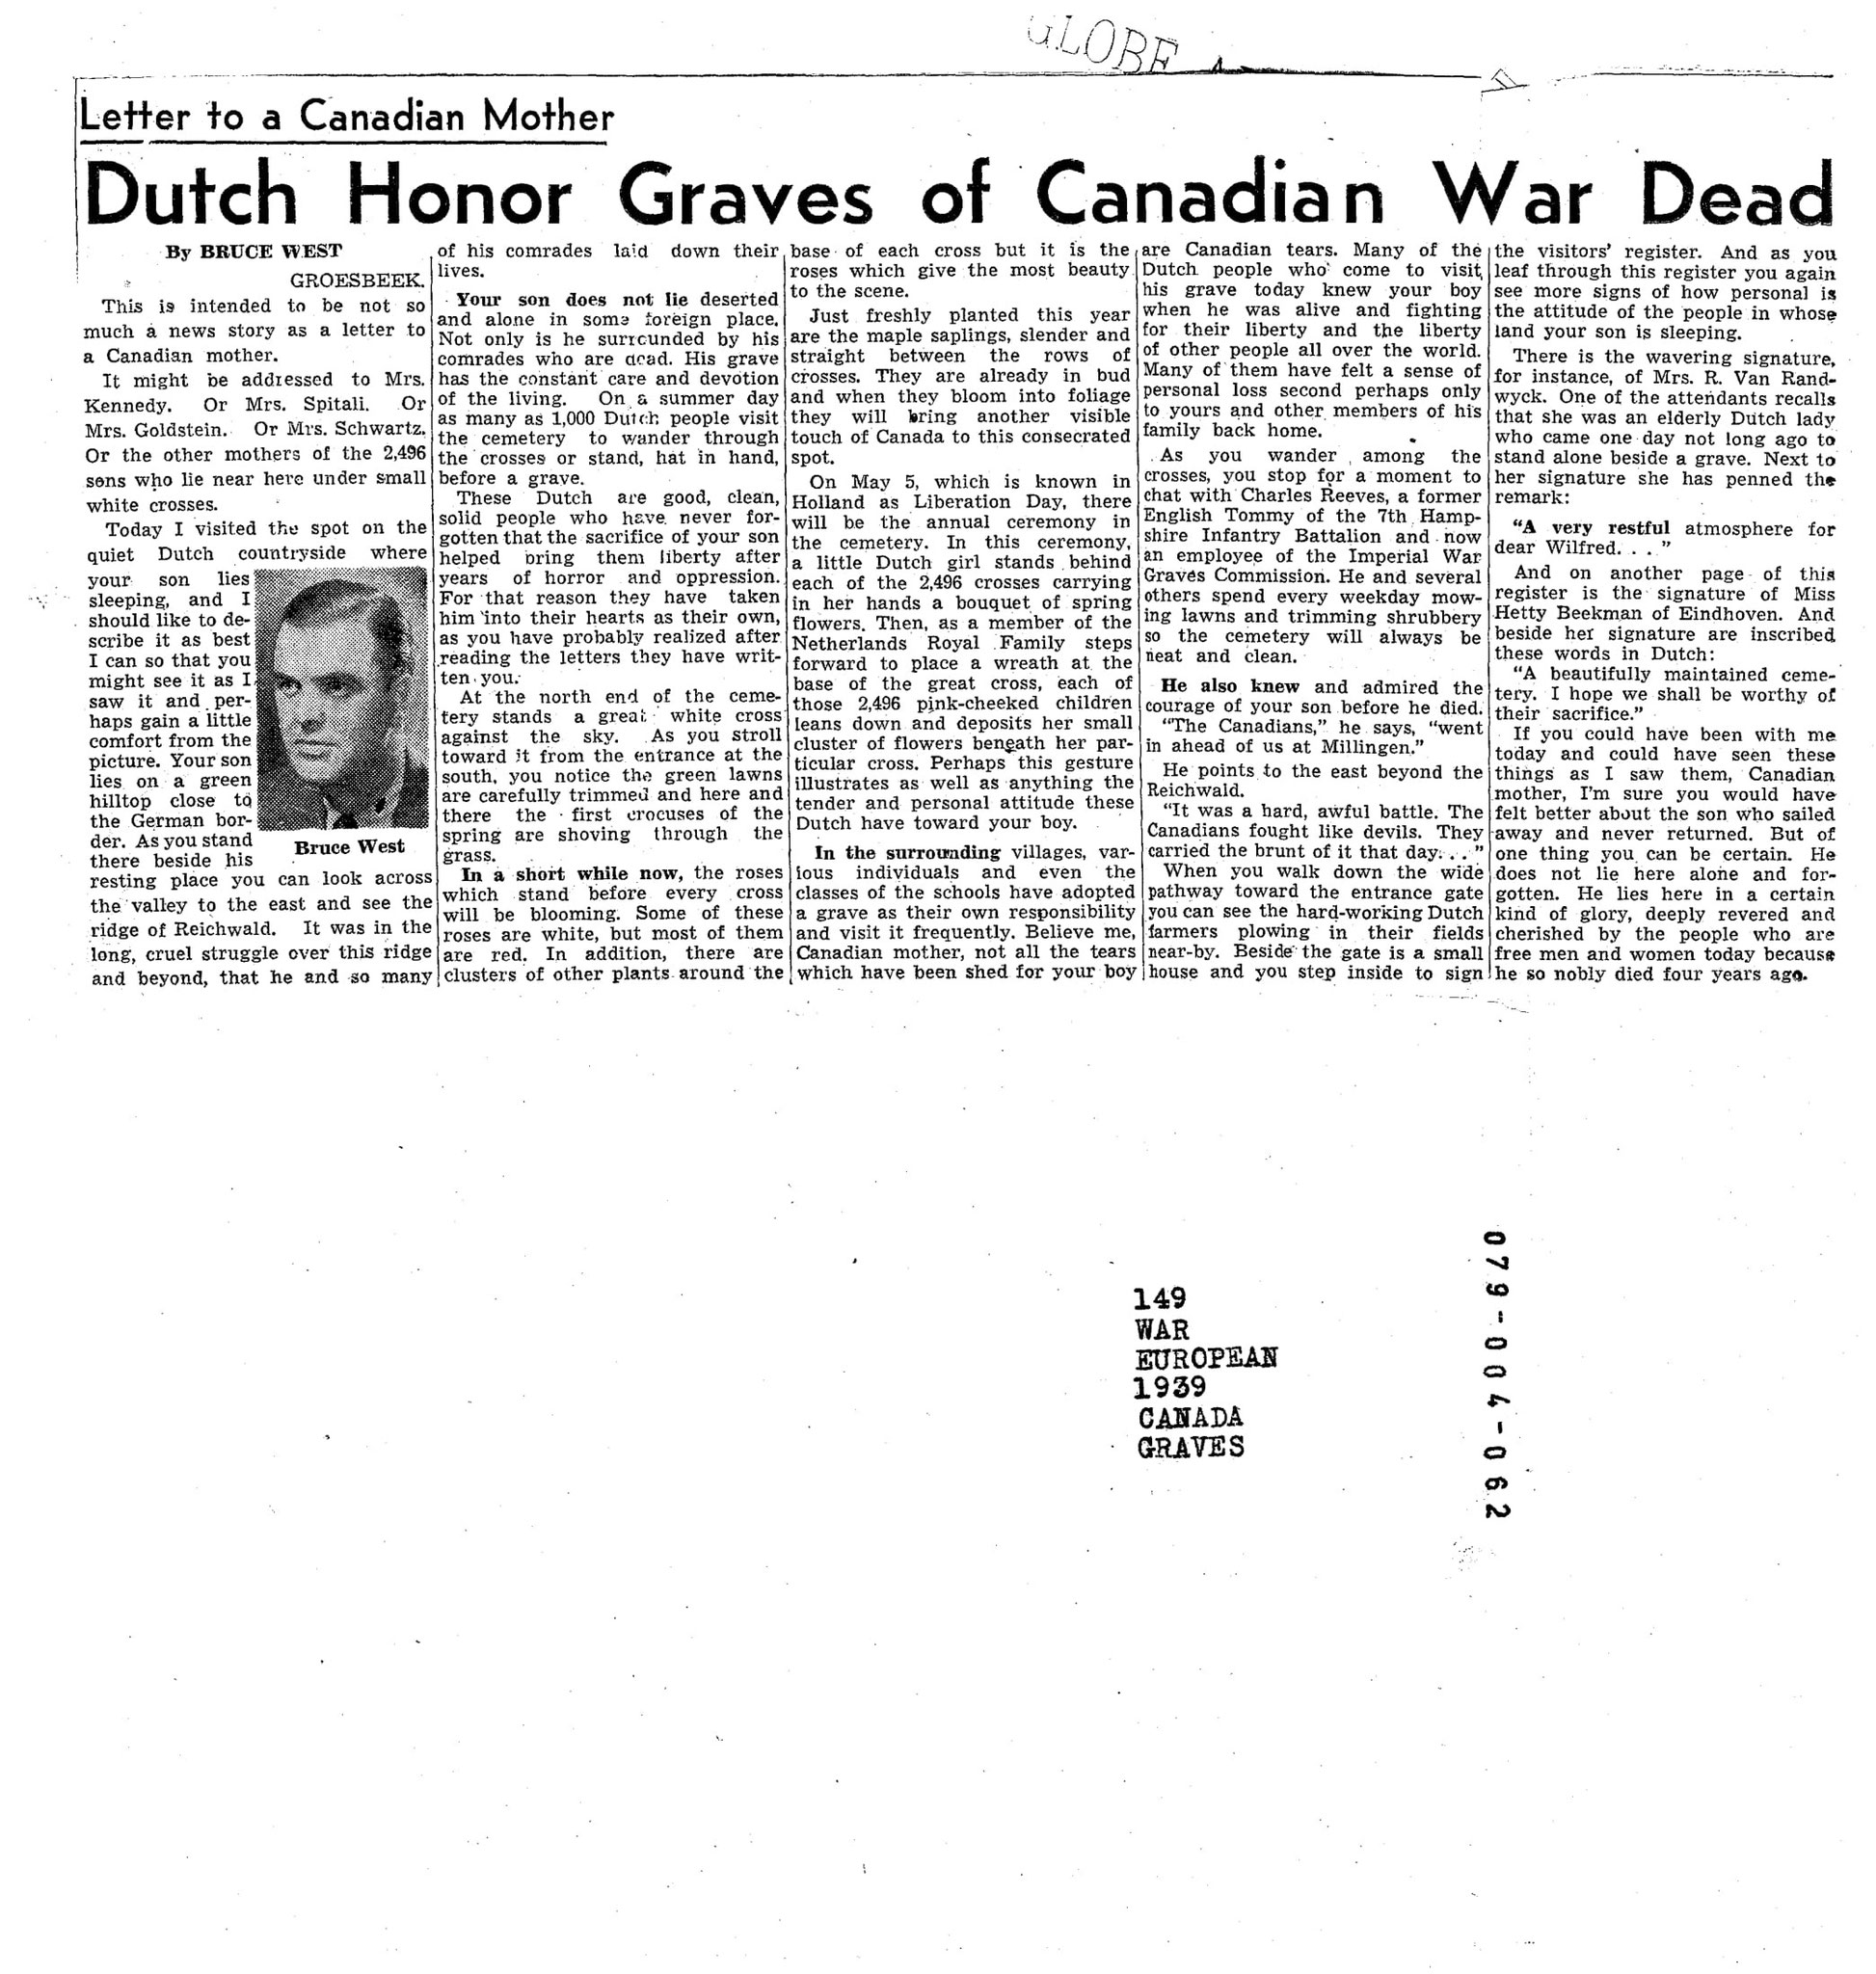 Globe and Mail 14-4-1949